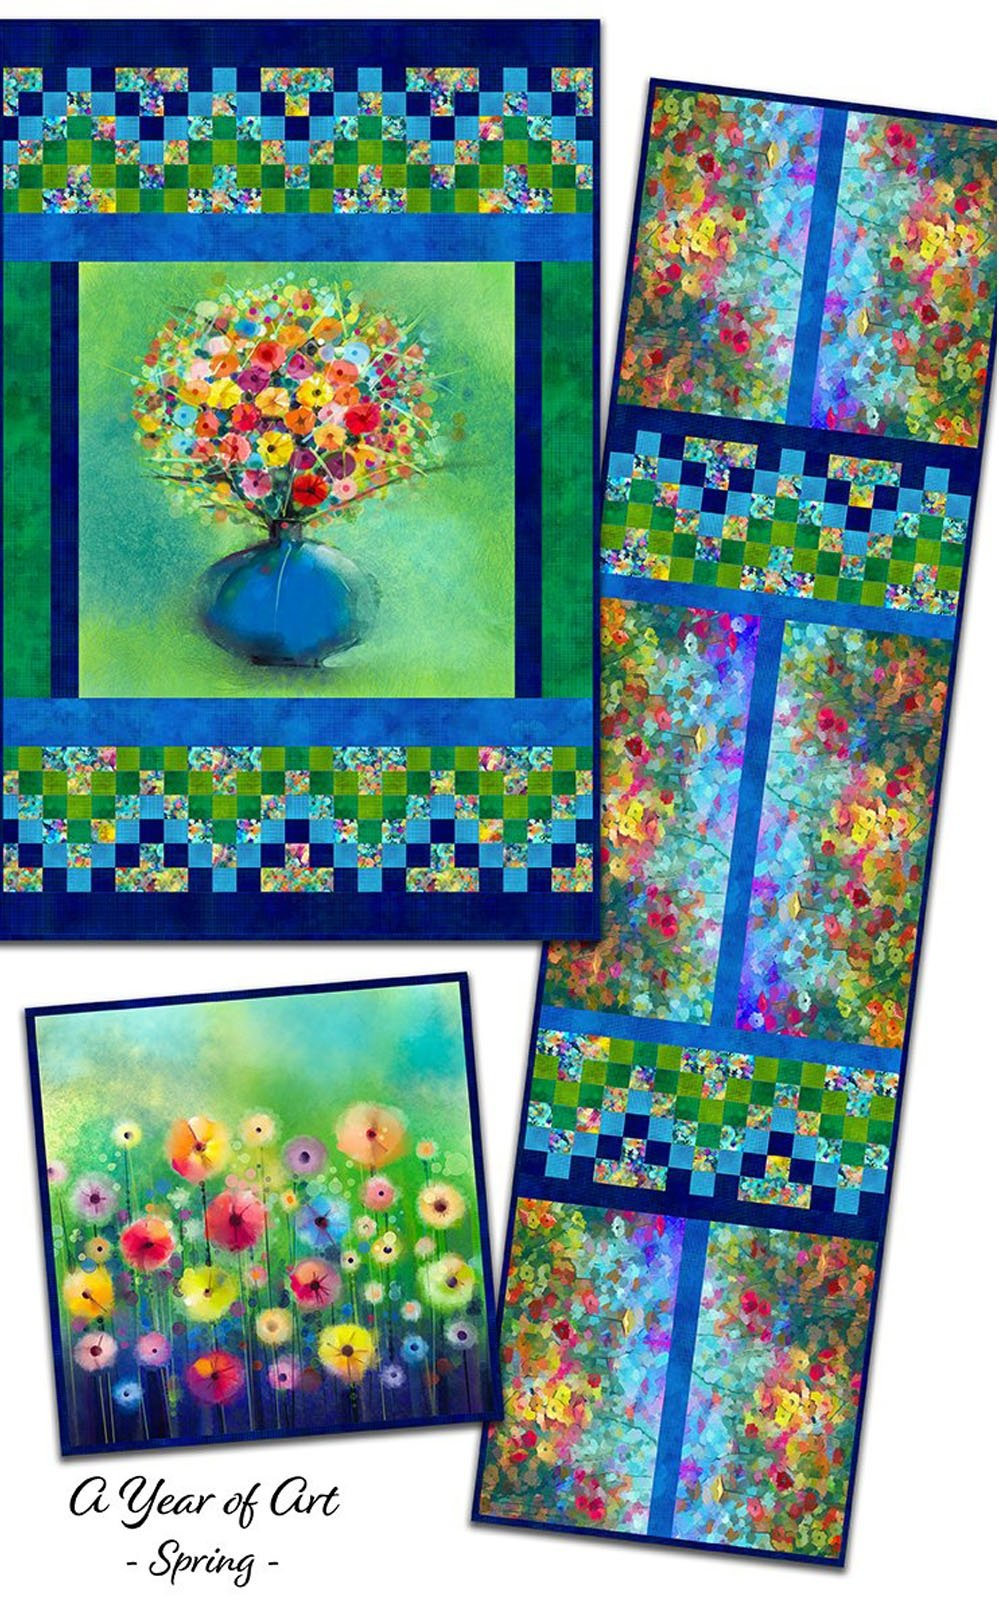 INTH-YOA SP PATT - A YEAR OF ART - SPRING QUILT PATTERN - ARRIVING IN FEBRUARY 2023